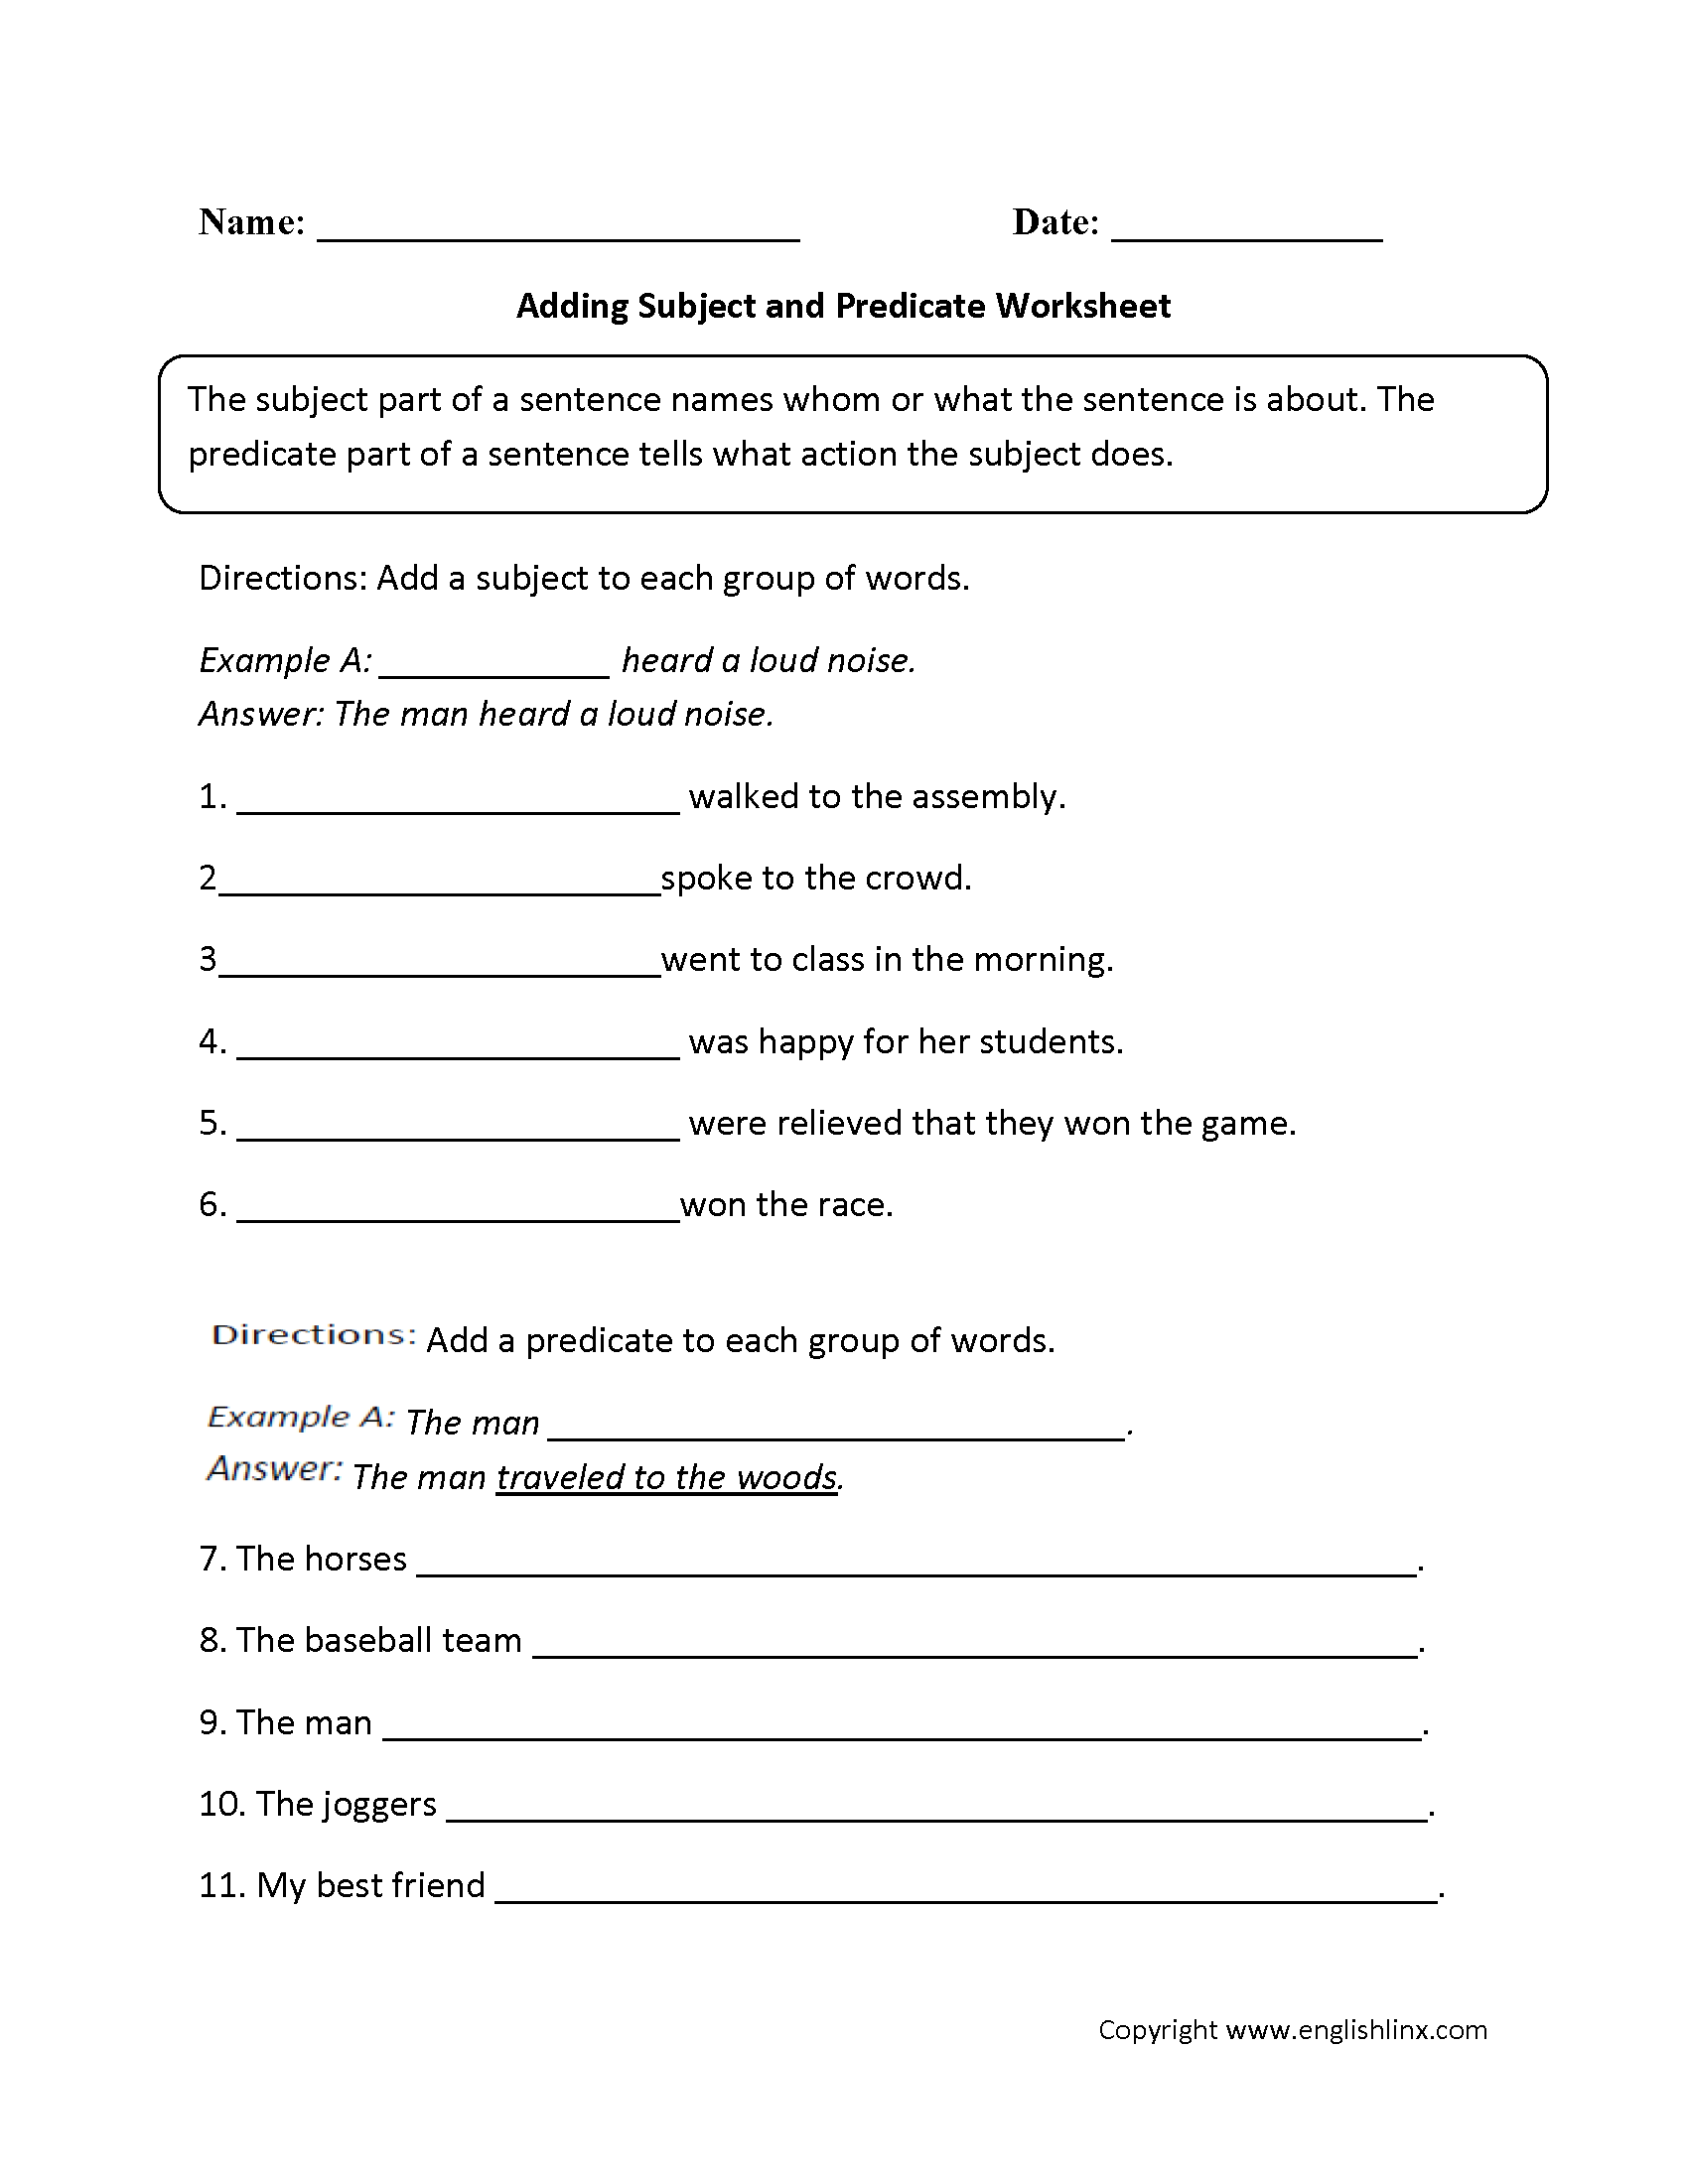 Worksheet Grammar Activity Sheets grammer sheets grade 3 maths worksheets coupon math worksheet for grammar coffemix 3b4920cdf1f0442ecc16e7e81b1cc6ca grammarhtml